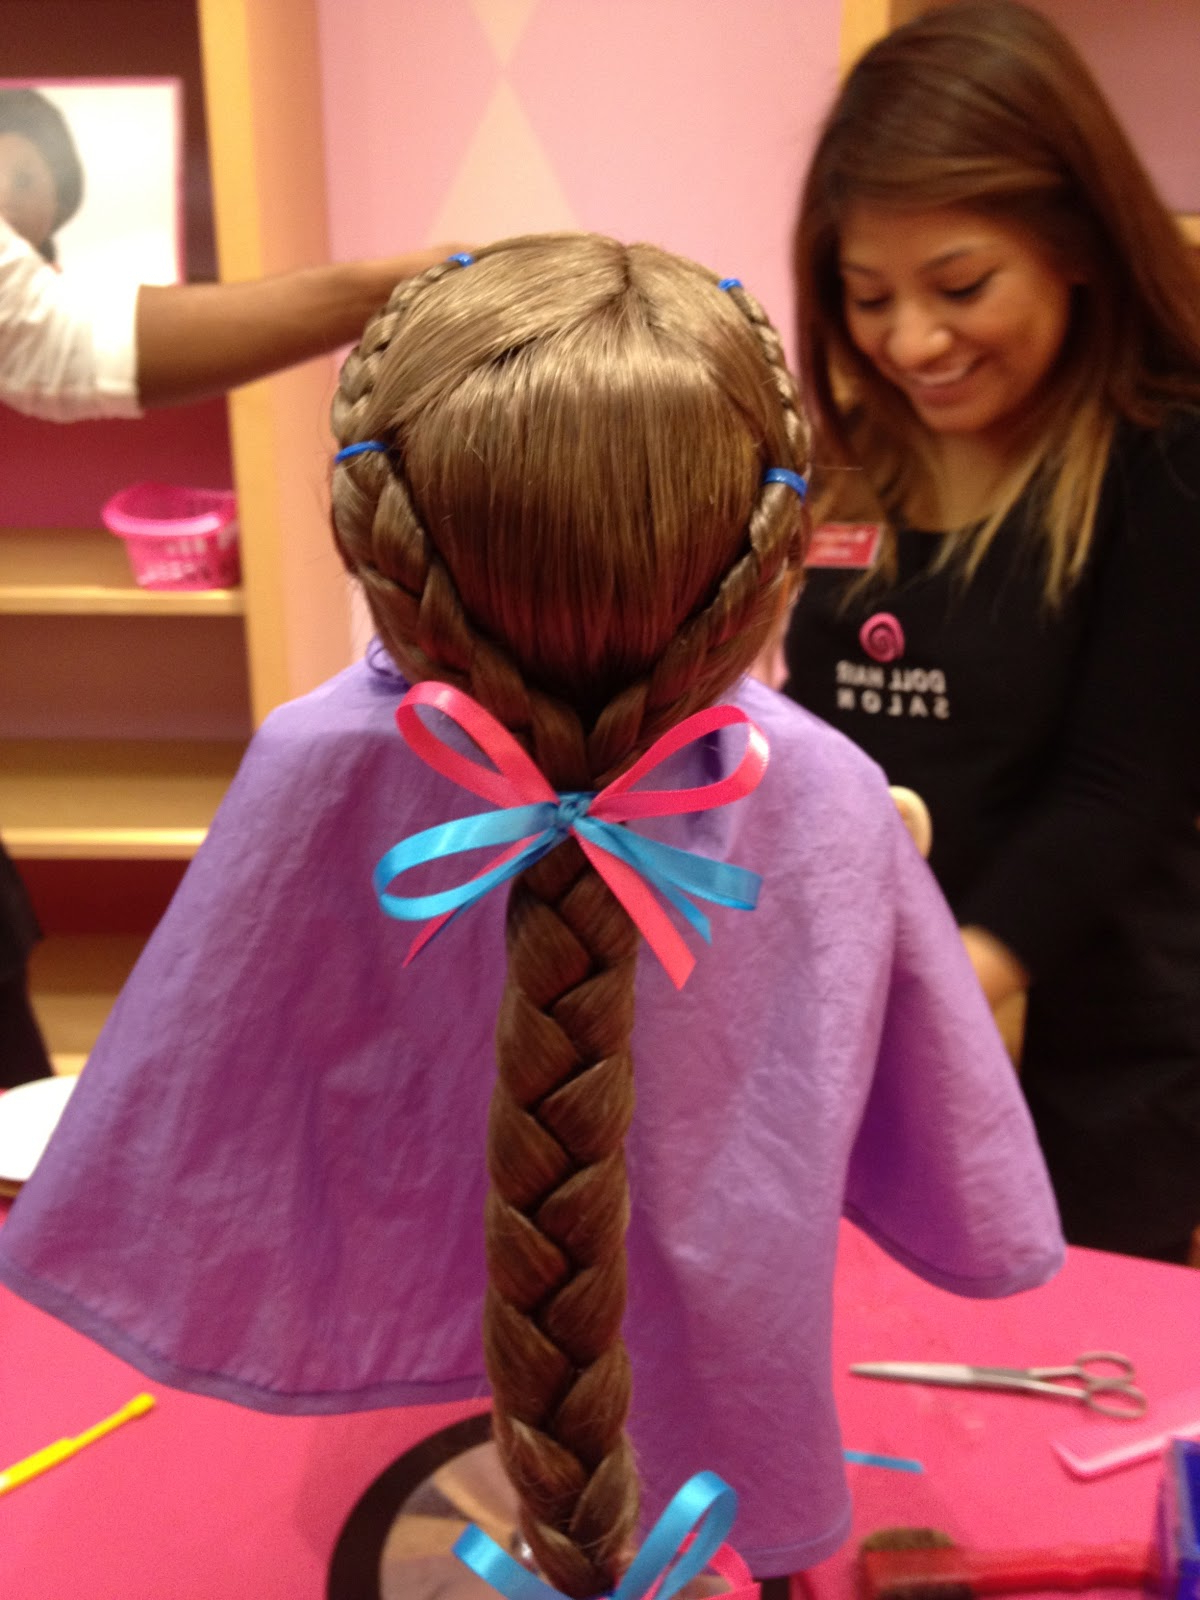 Top Graphic Of American Girl Doll Hairstyles   Natural Modern Hairstyles In Hairstyles For American Girl Dolls With Short Hair (View 11 of 25)